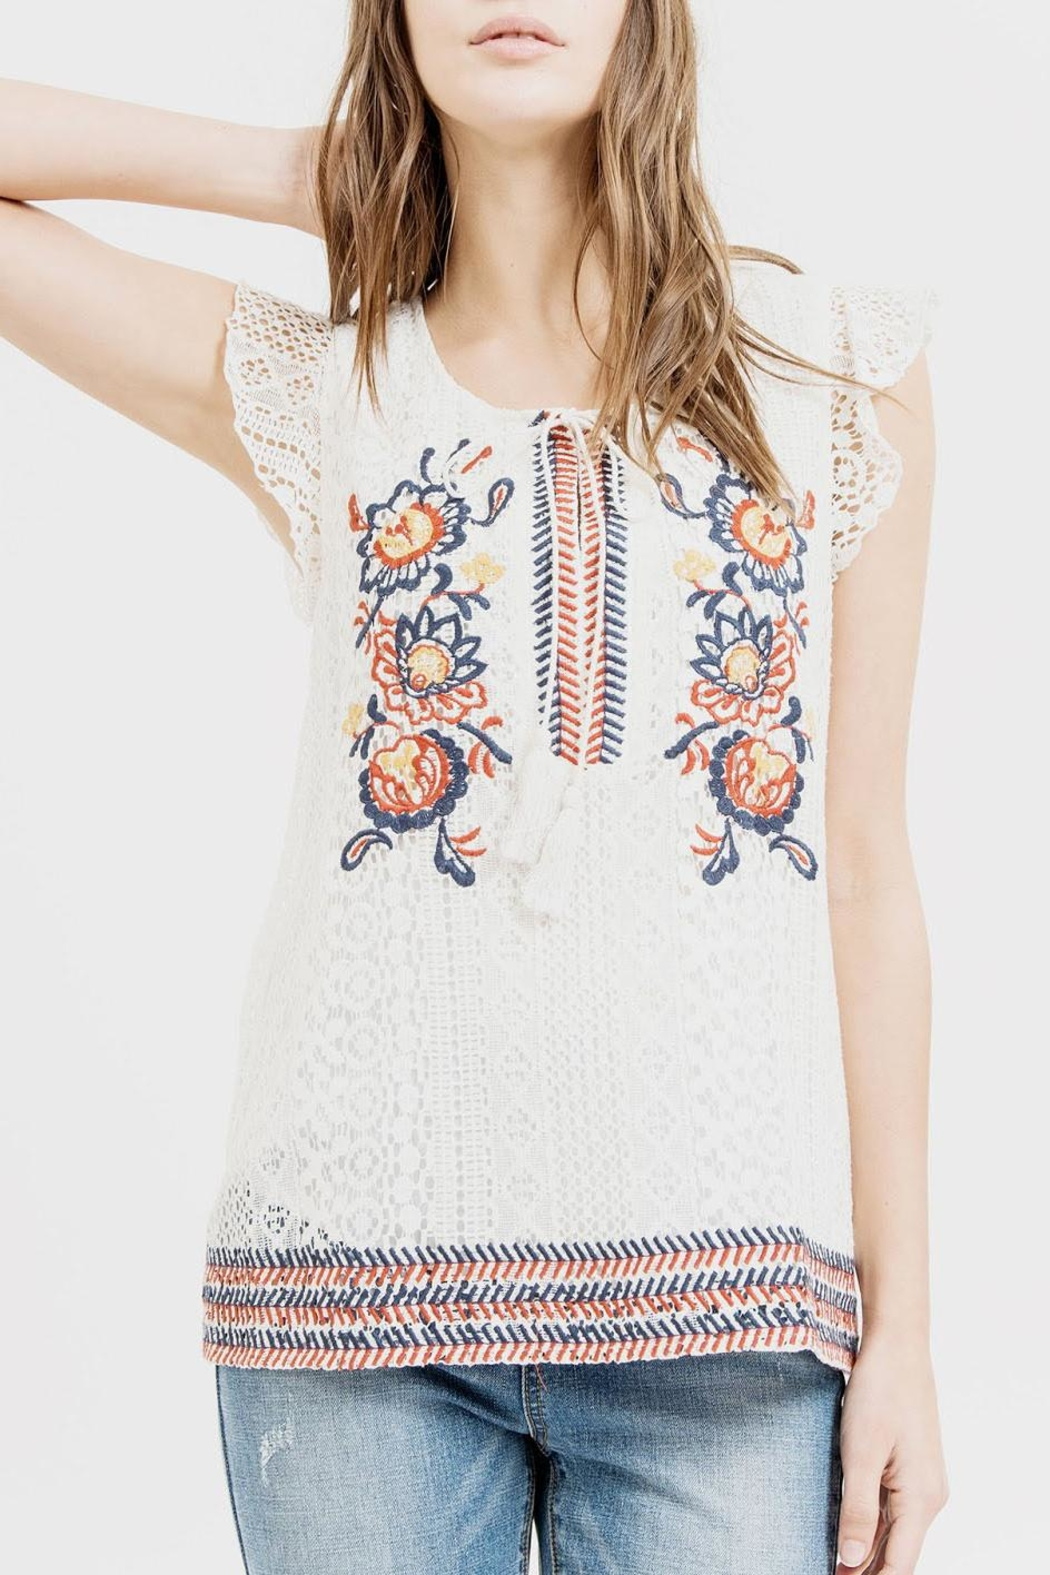 Blu Pepper Embroidered Lace Top - Main Image